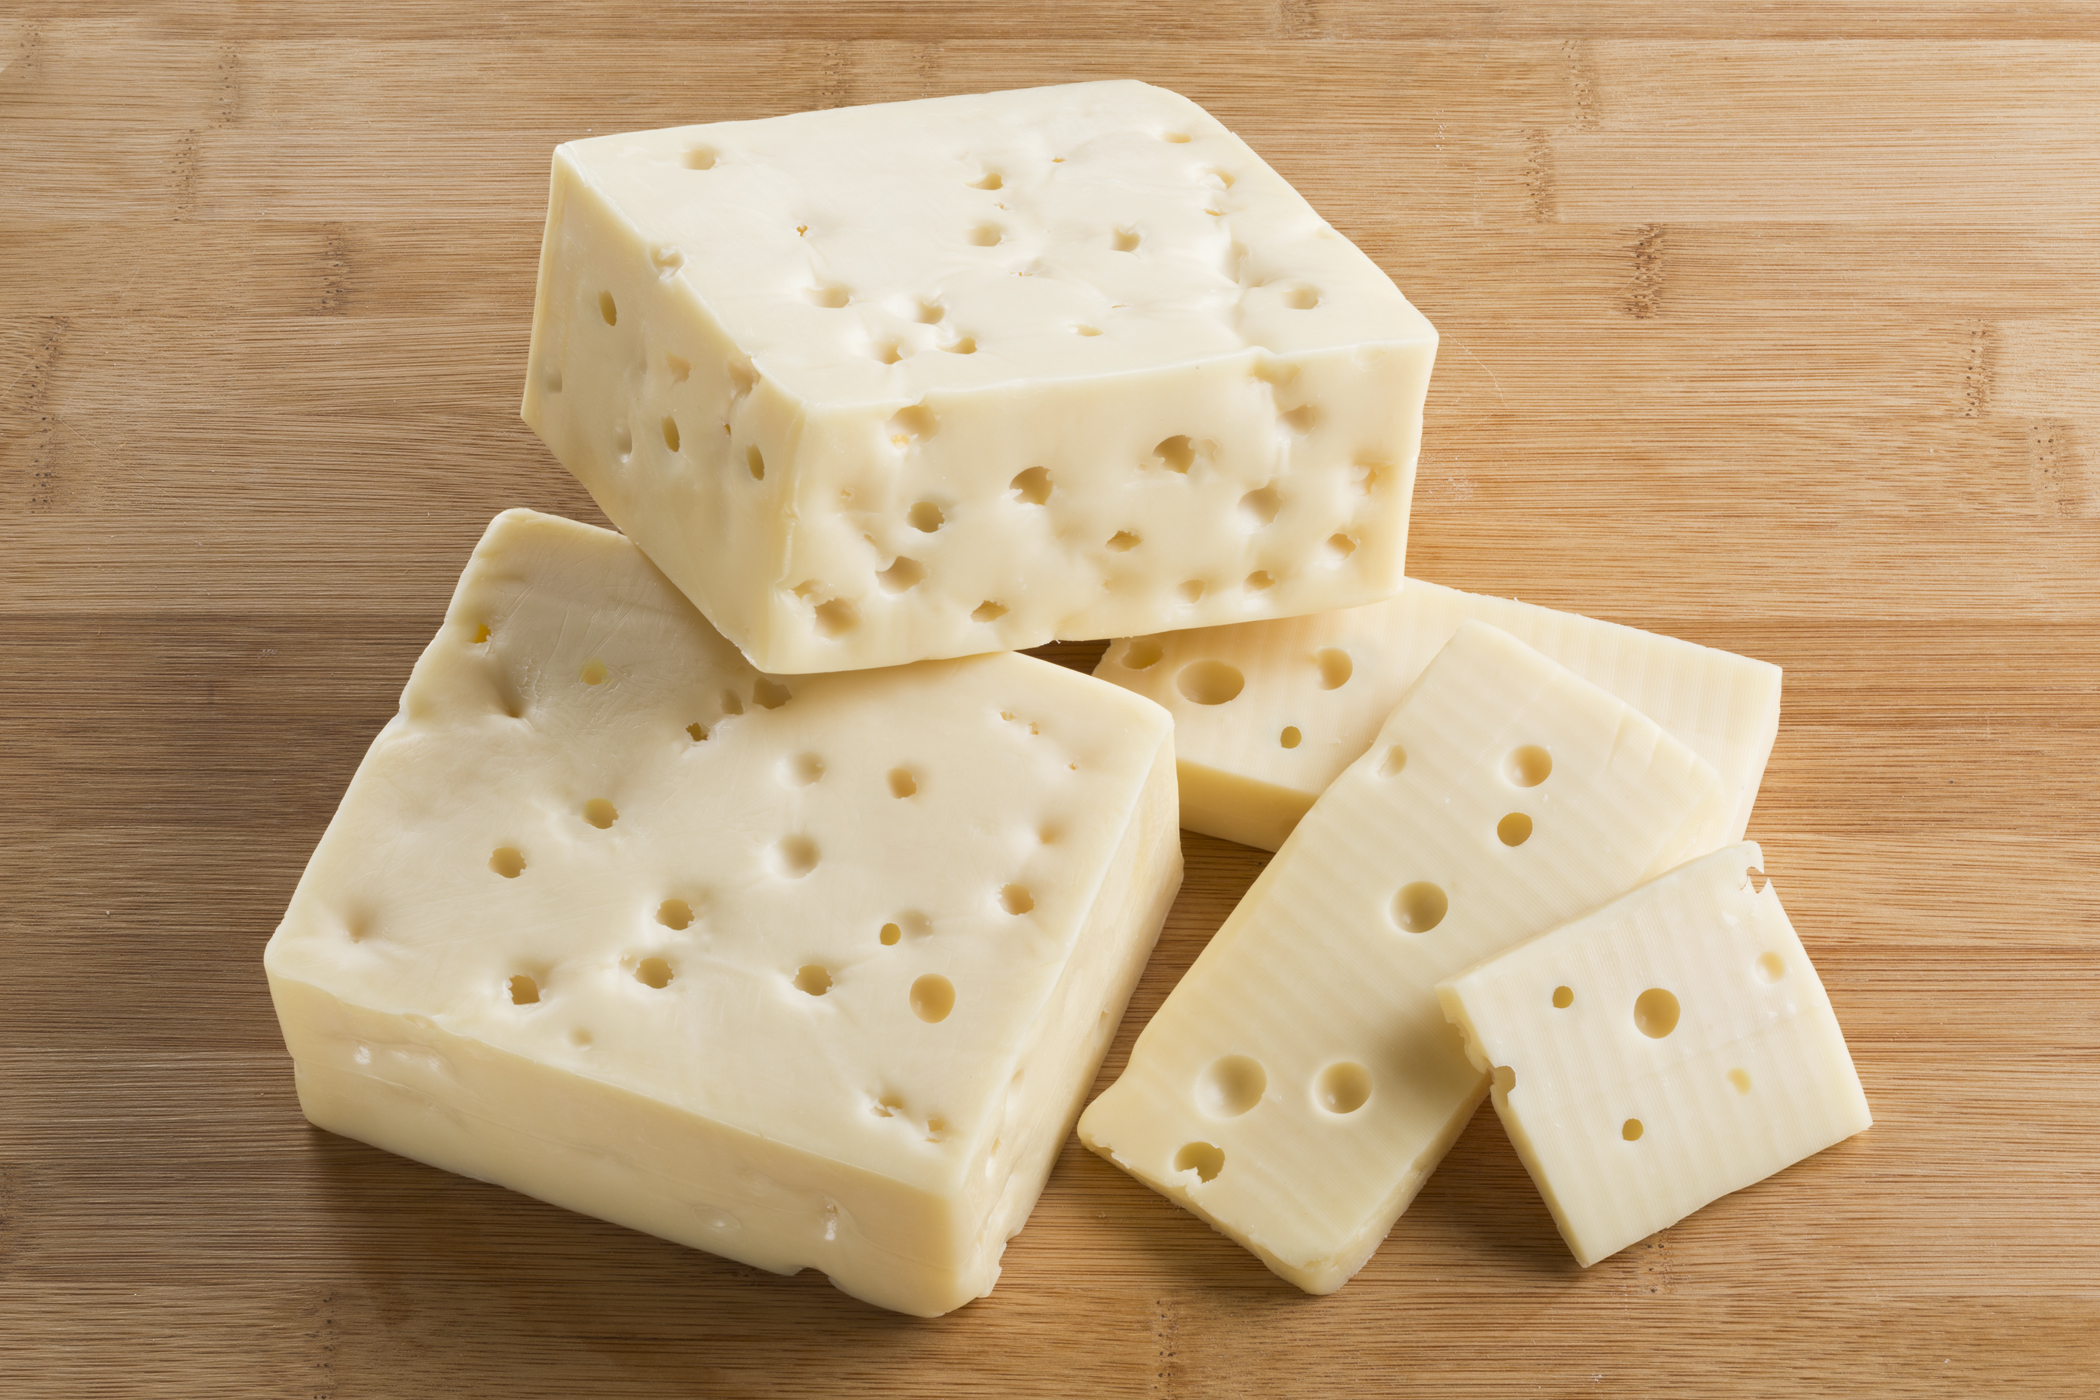 aged swiss cheese buy wholesale cheese online cheese curds